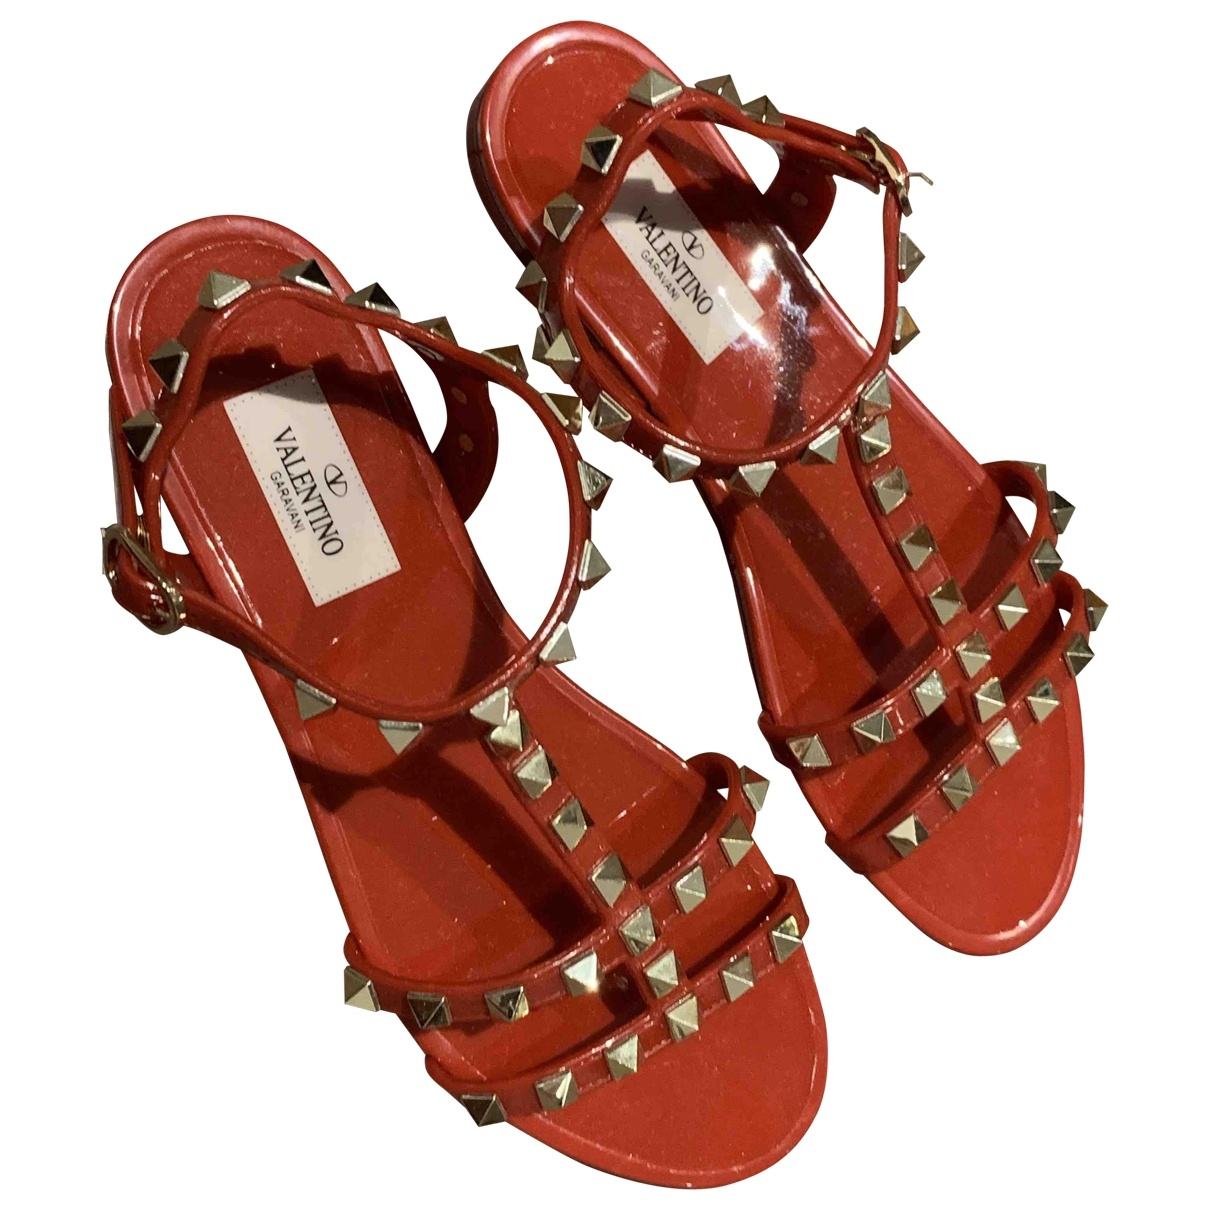 Valentino Garavani Rockstud Red Leather Sandals for Women 36 EU